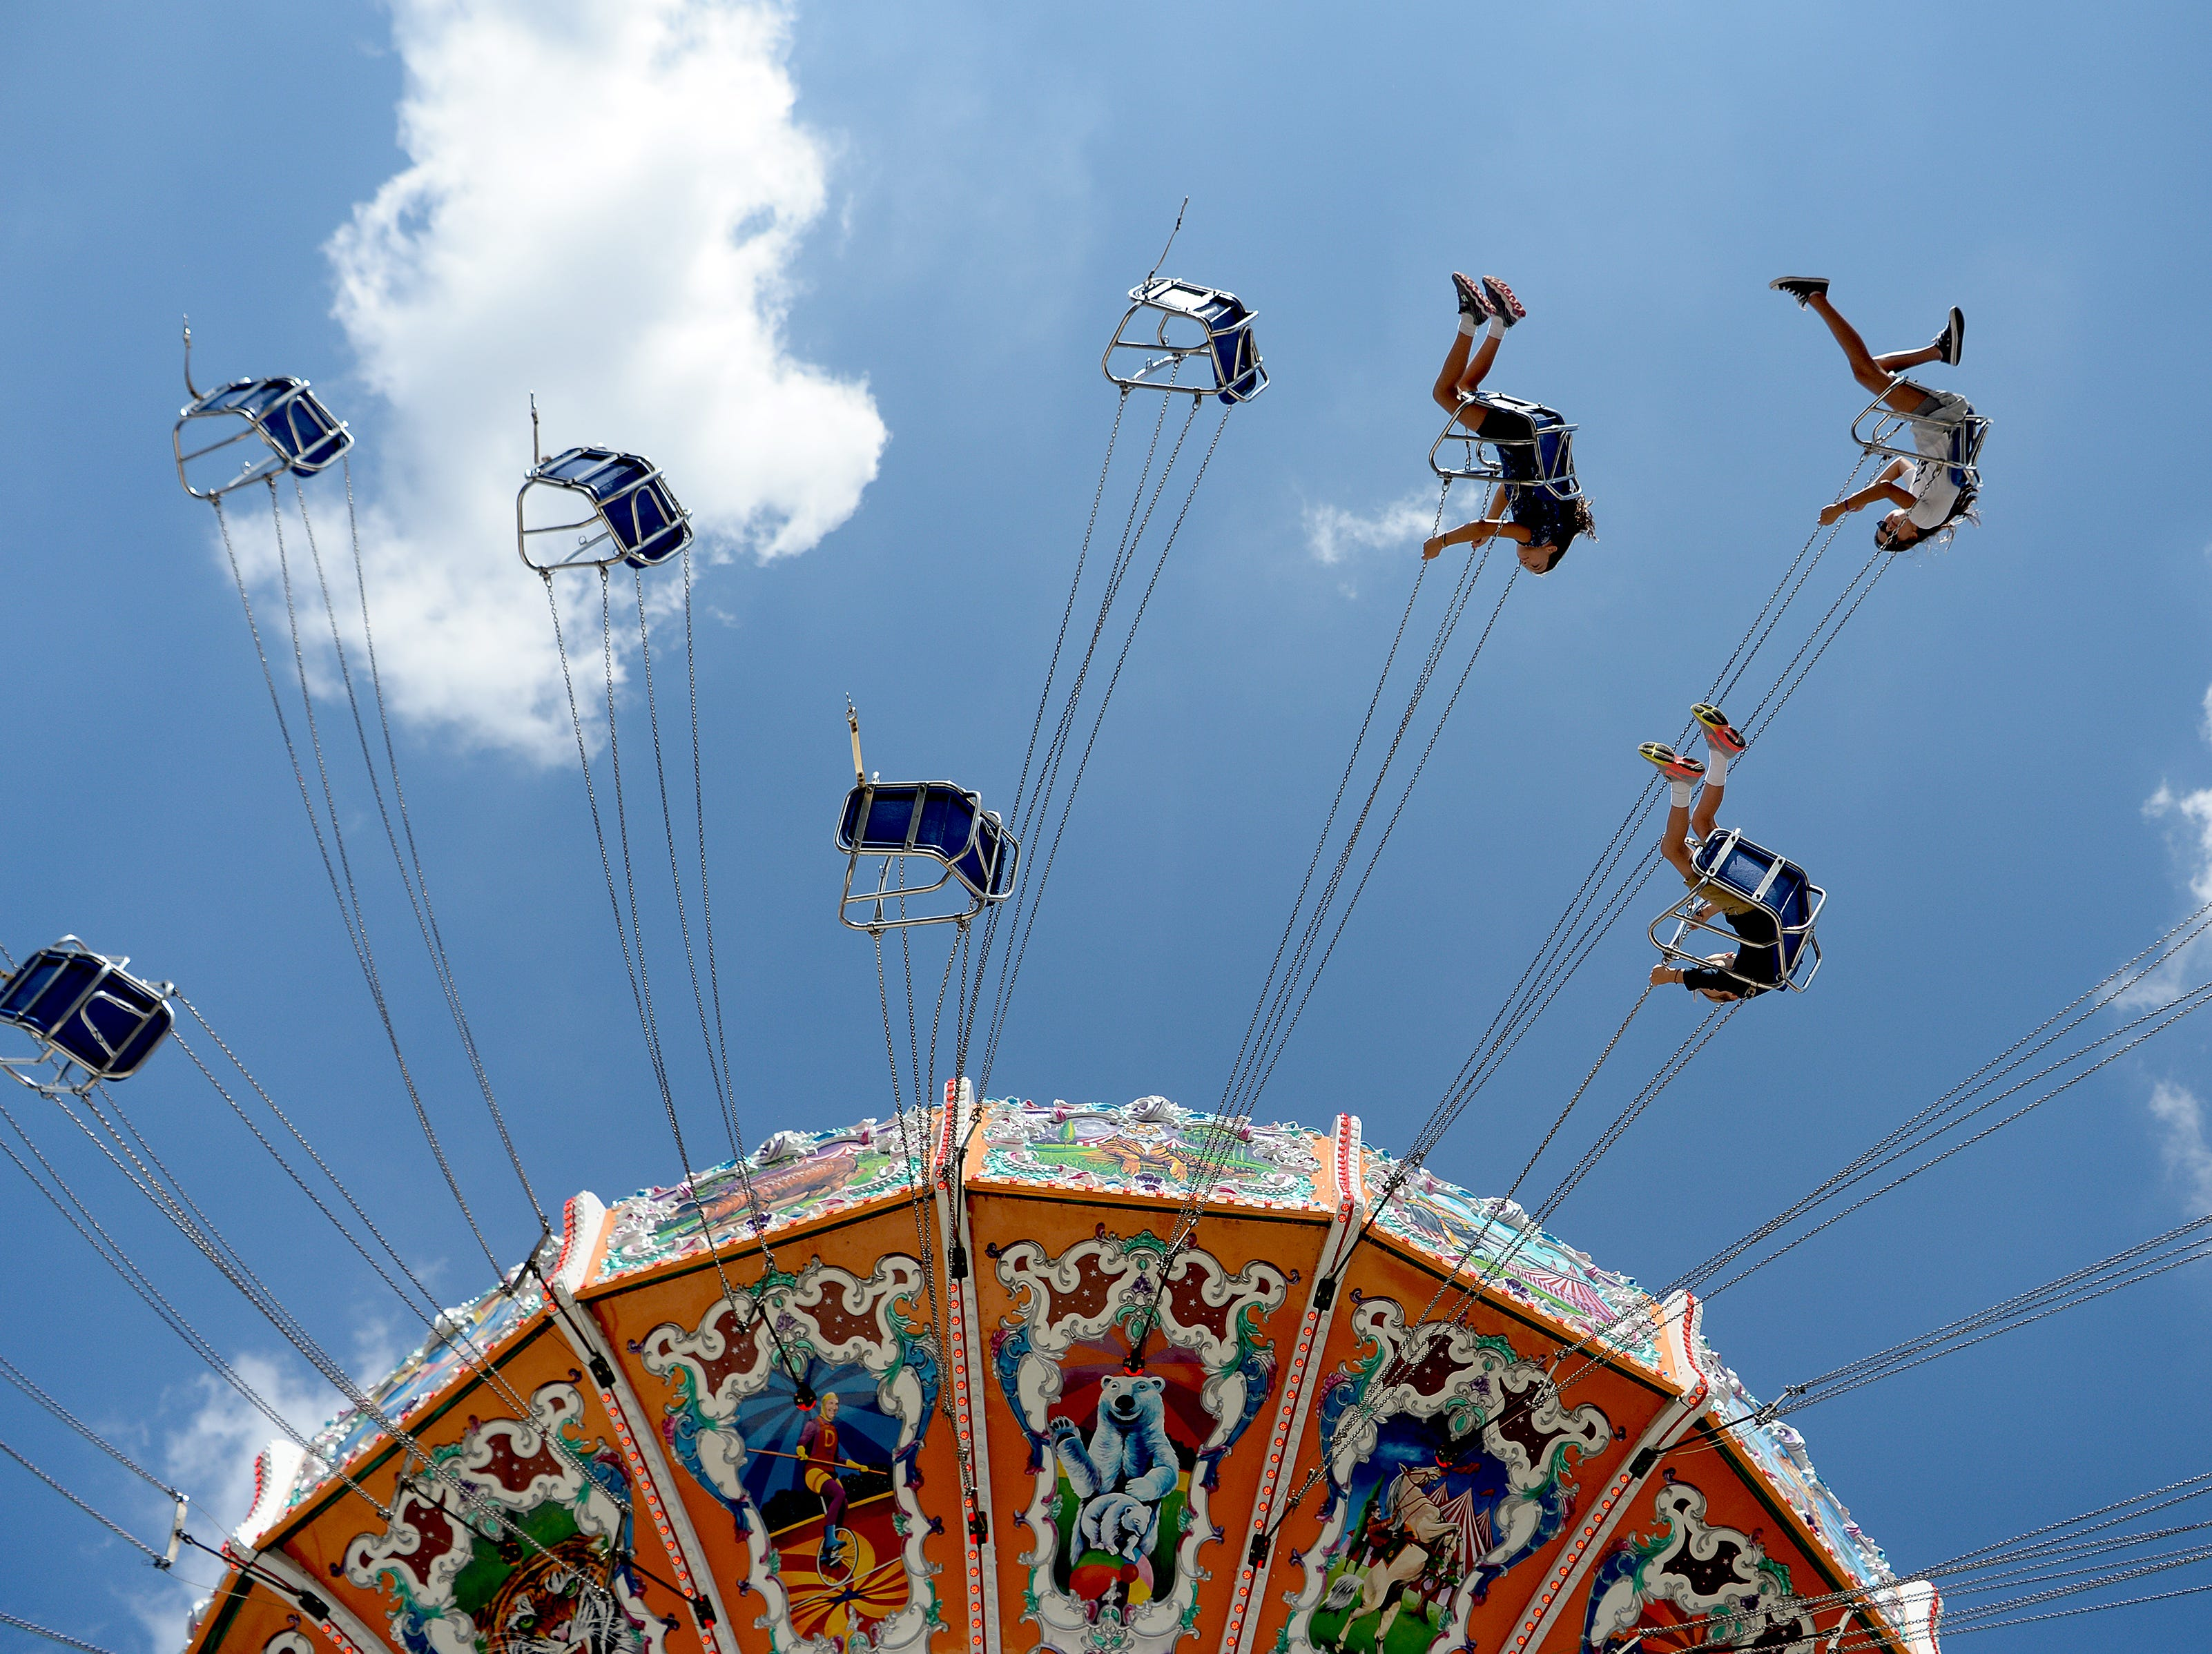 The 2018 NC Mountain State Fair opened with rides, games, shows, exhibits, livestock and more at the WNC Agricultural Center on Sept. 7, 2018.